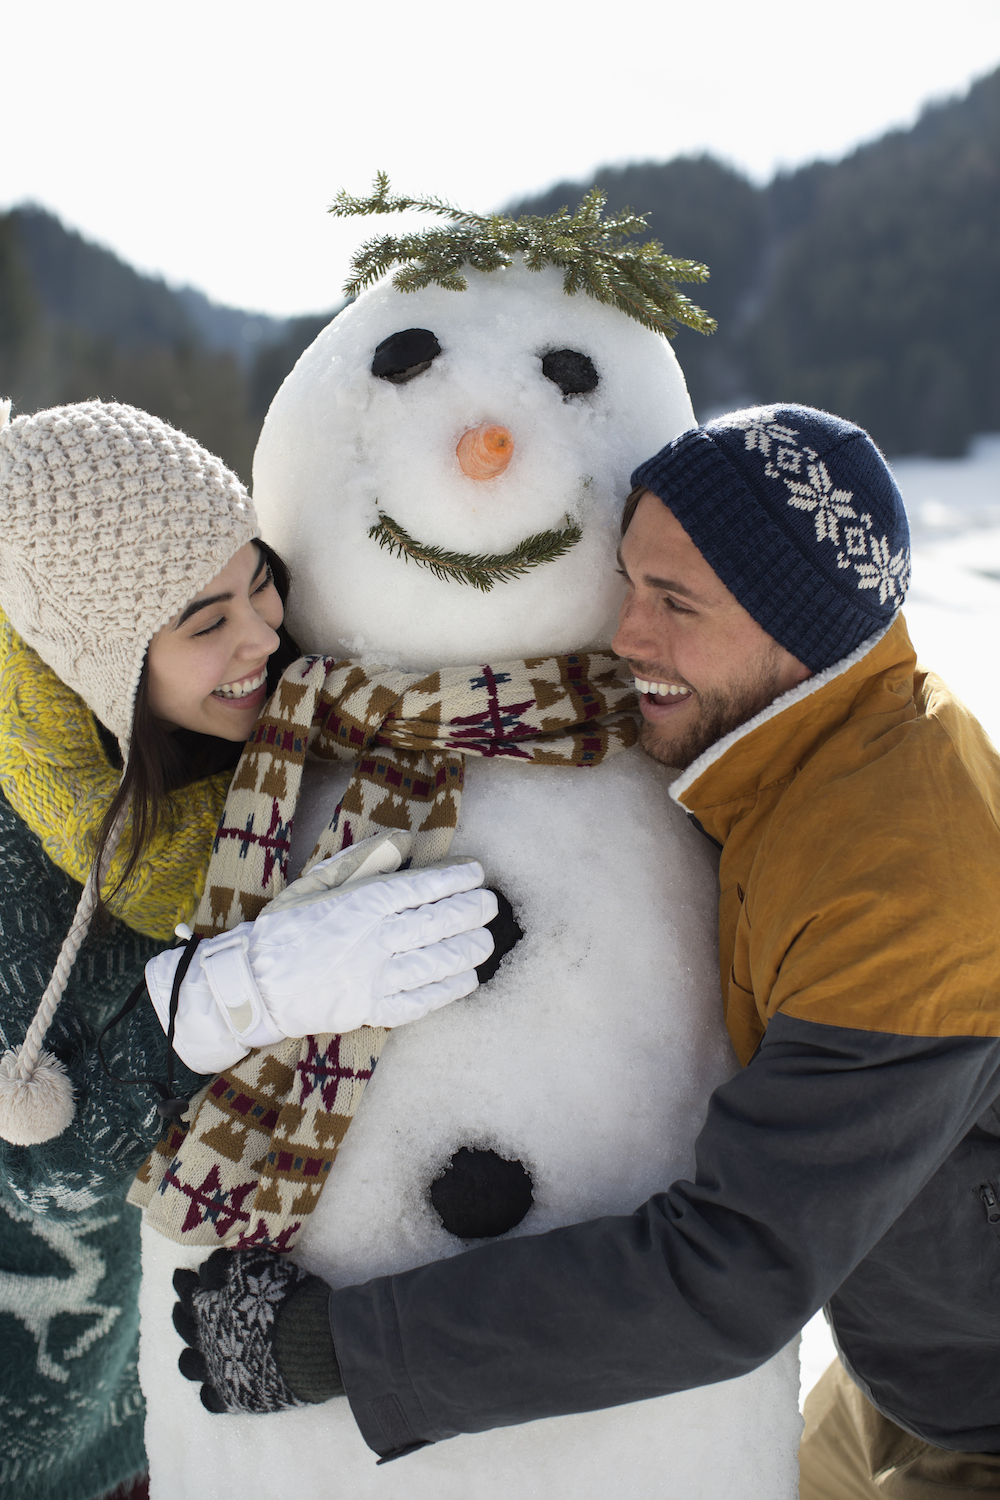 couple smiling with snowman in winter